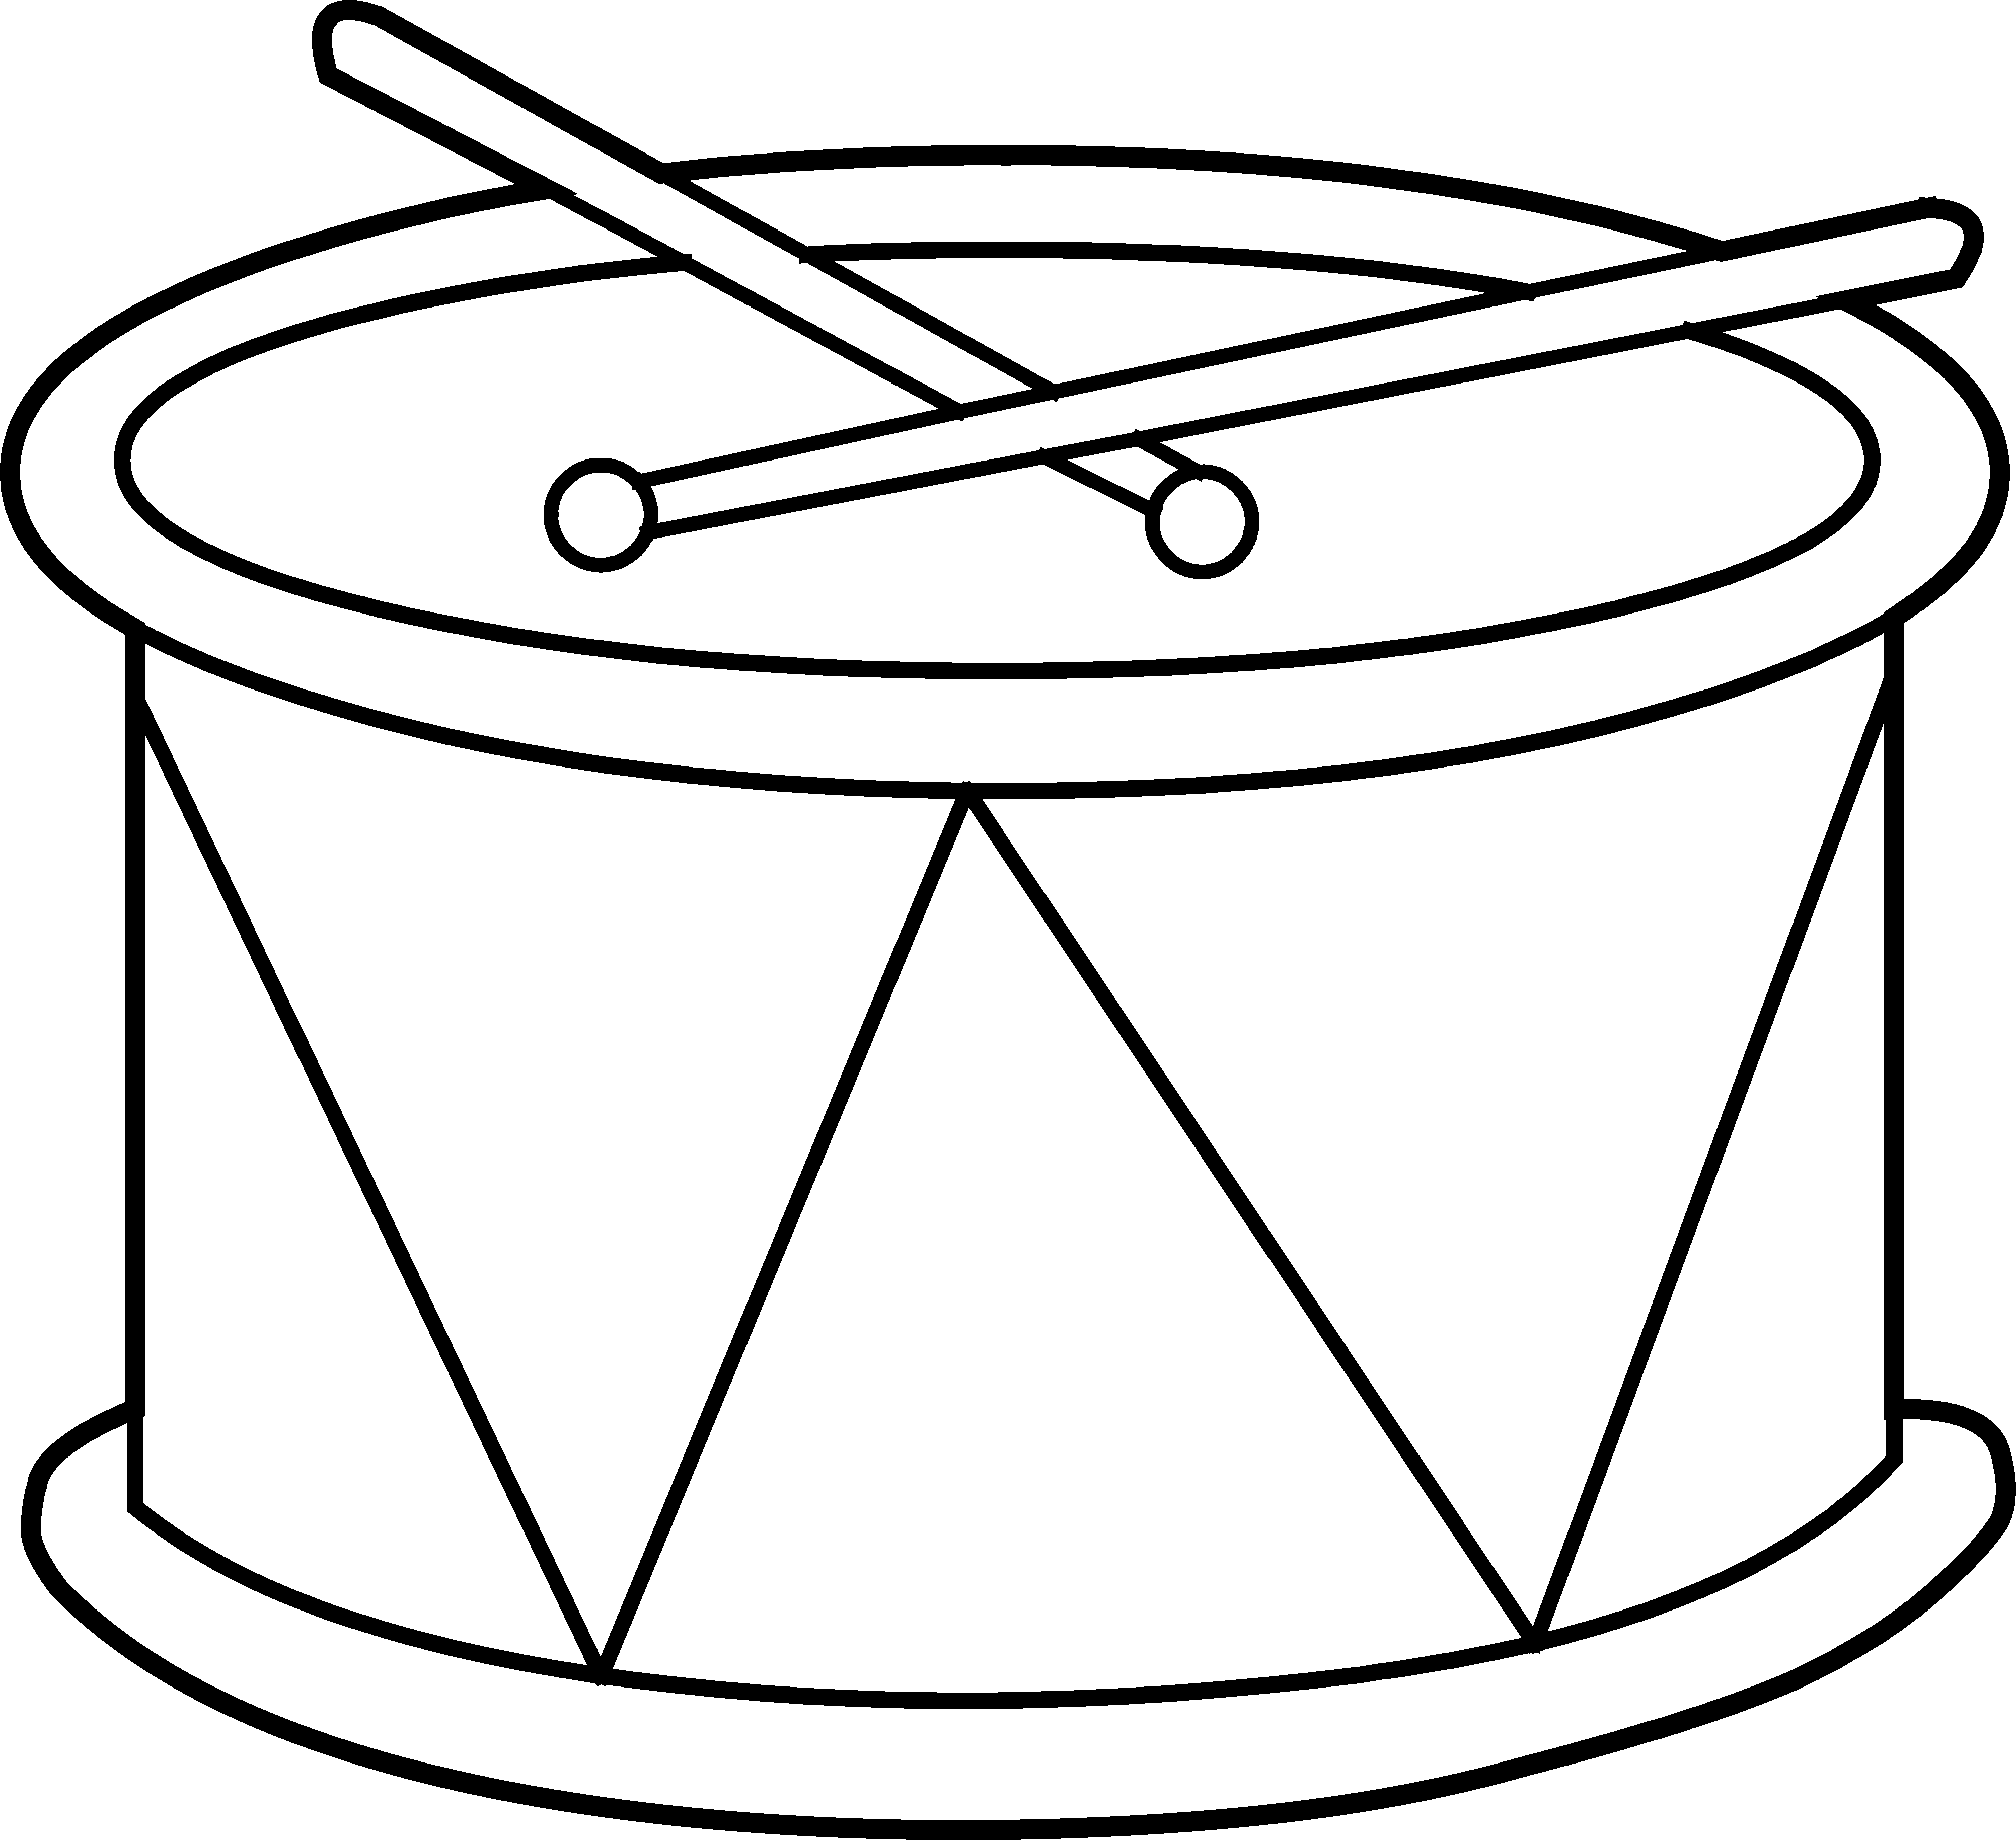 drums coloring page drums coloring pages coloring page drums